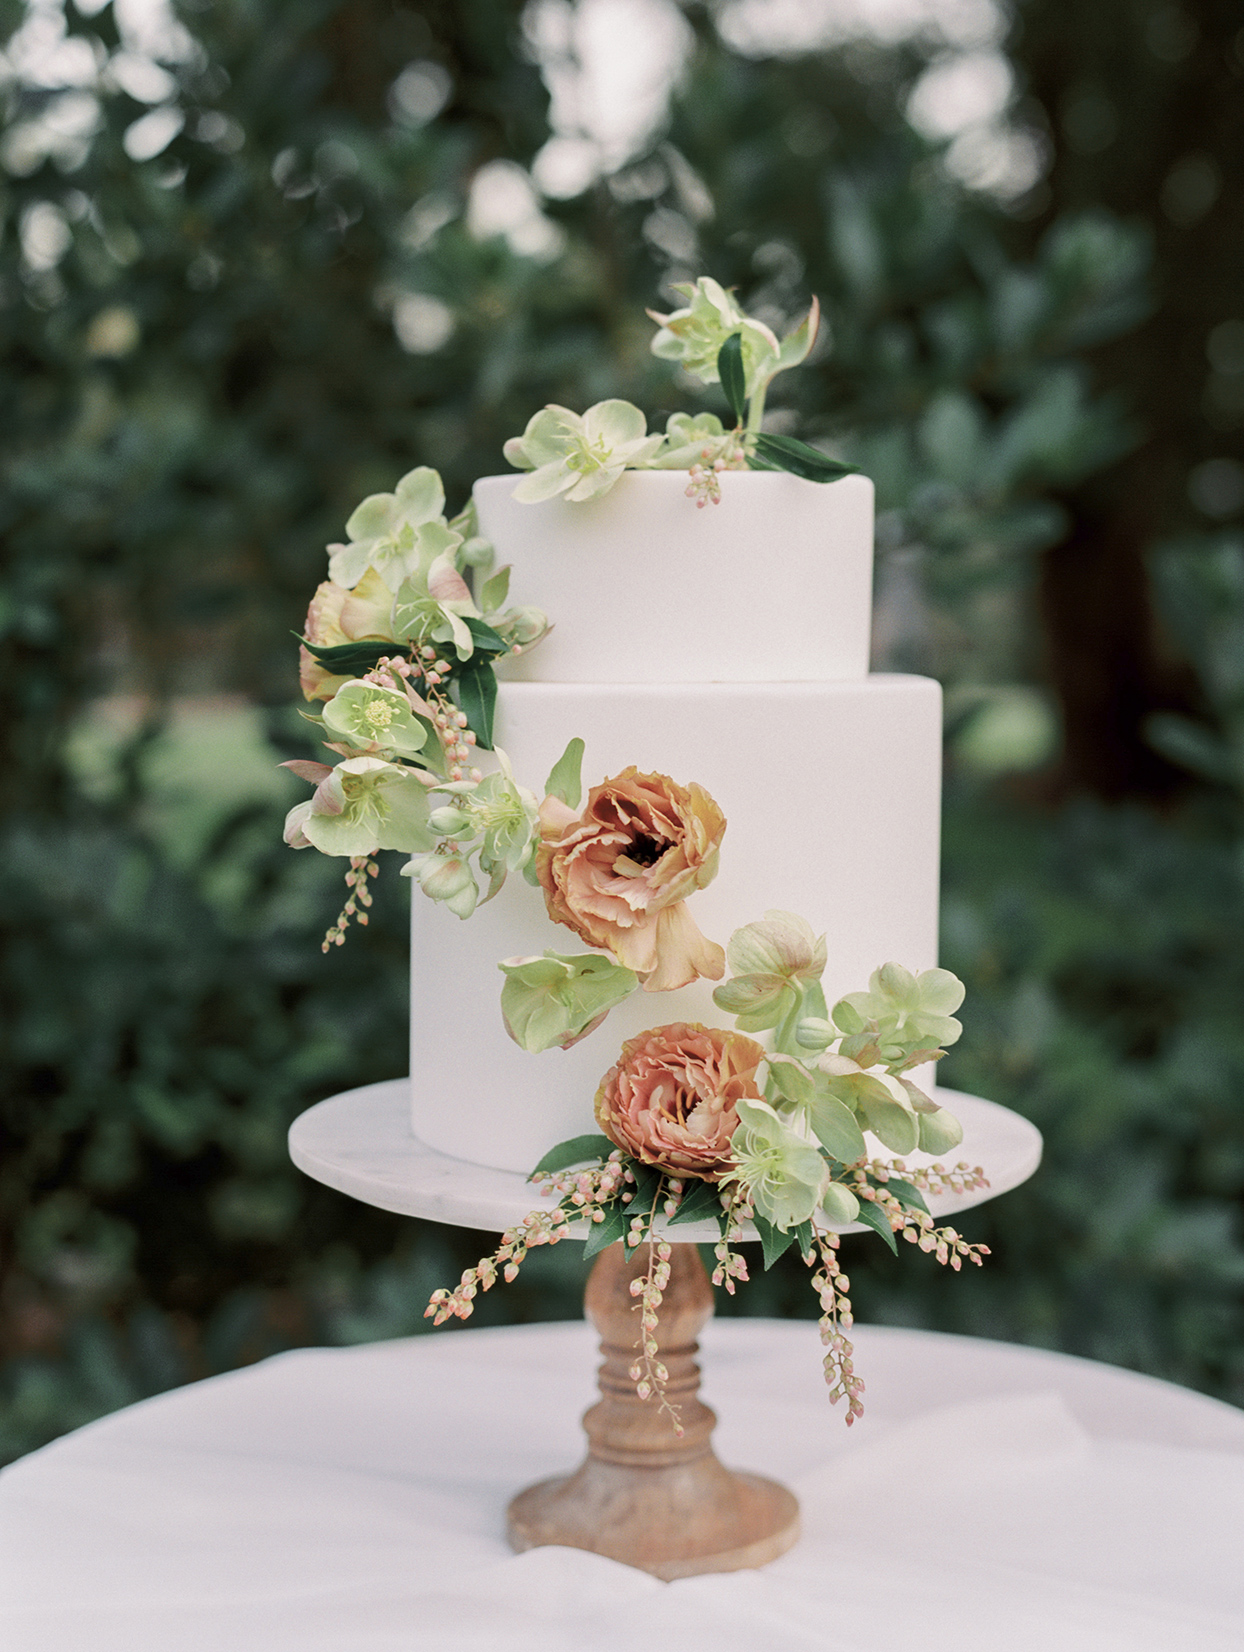 white wedding cake with sash of flowers and buds